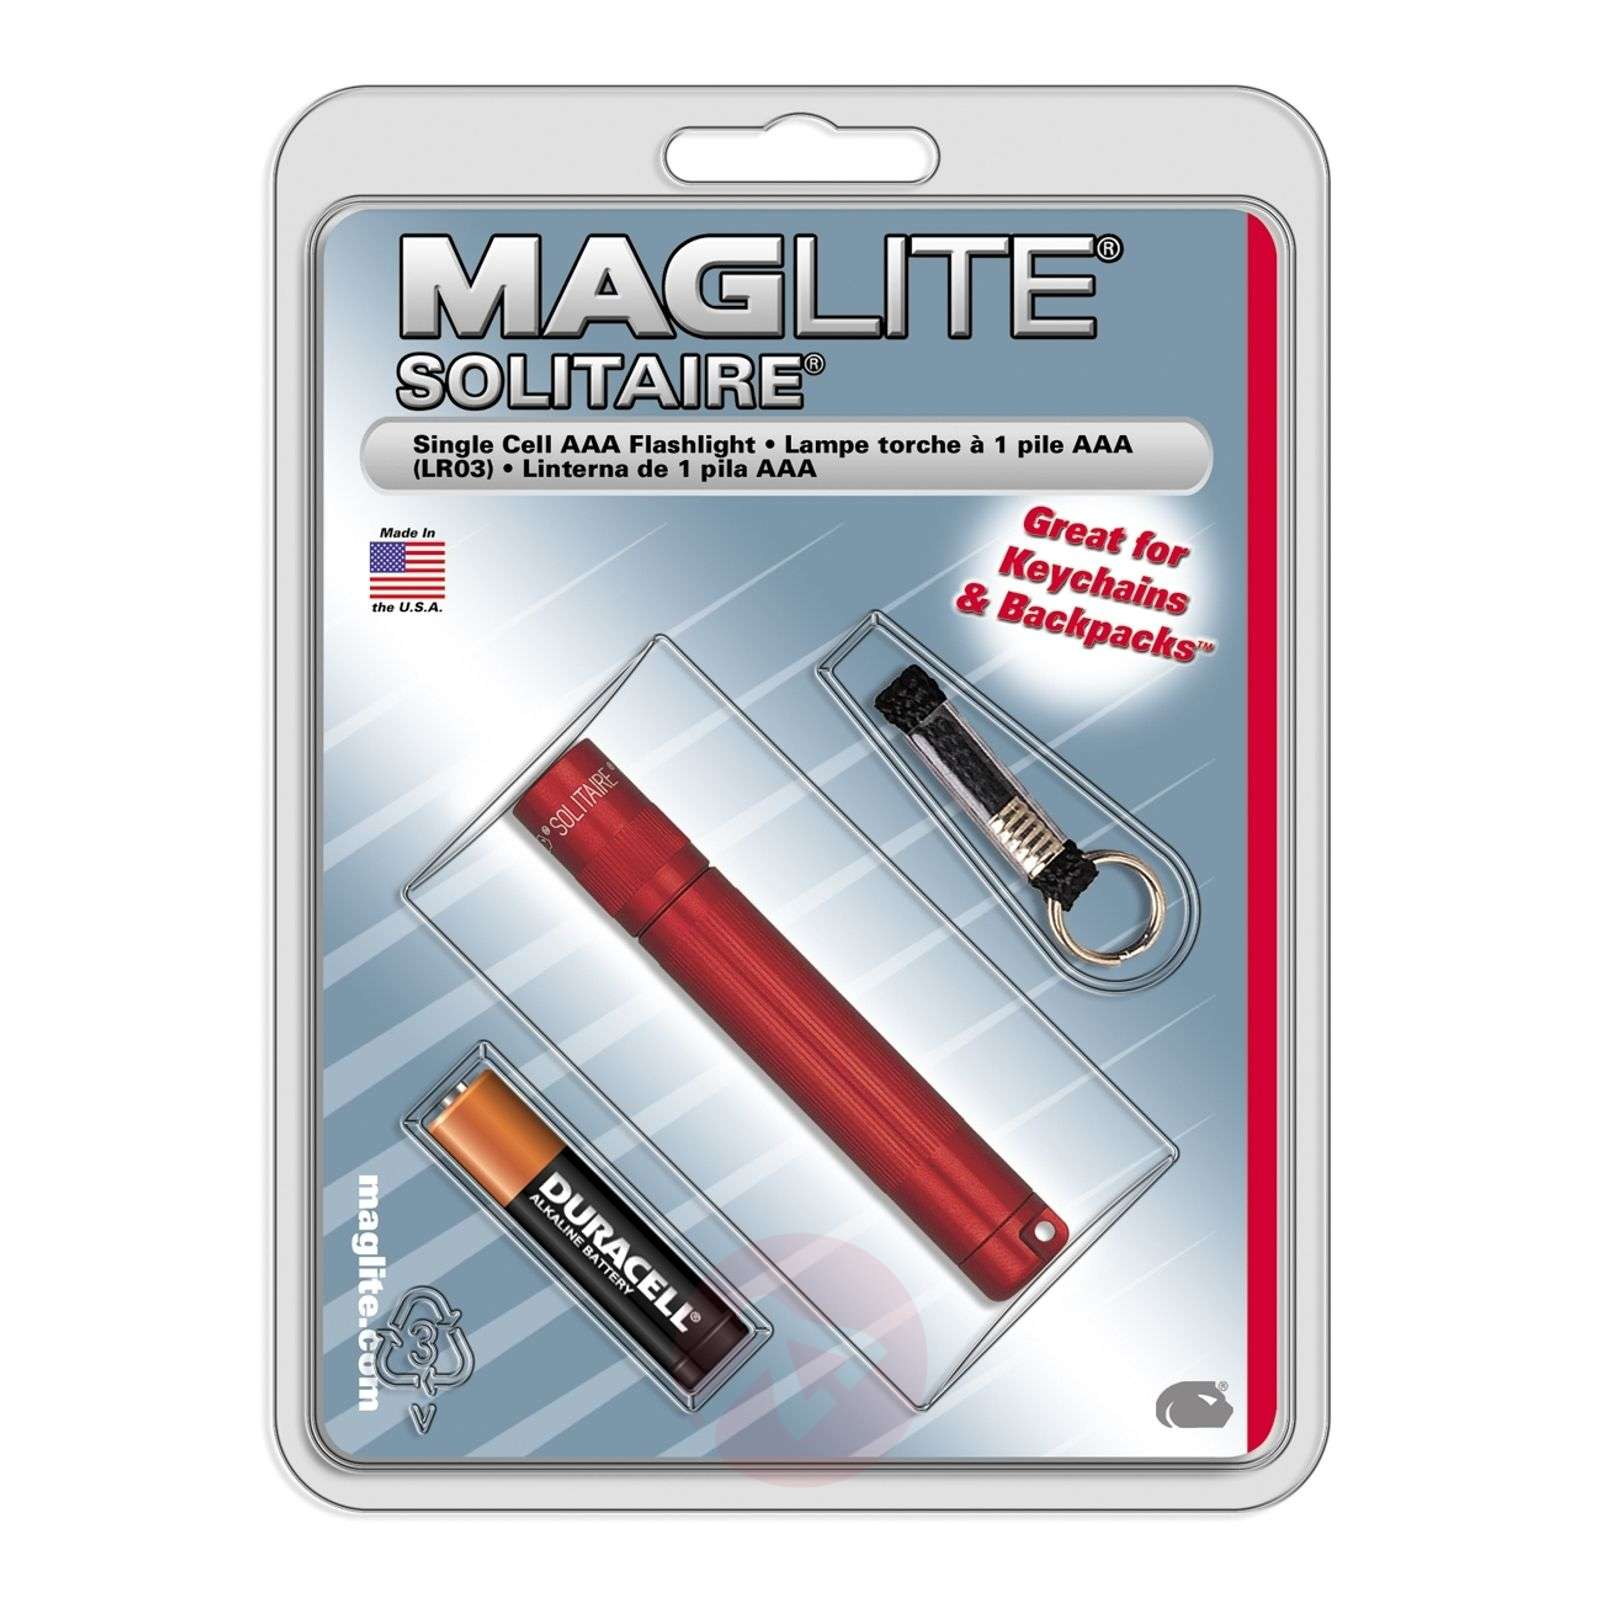 Maglite Solitaire torch in red-6535043-01